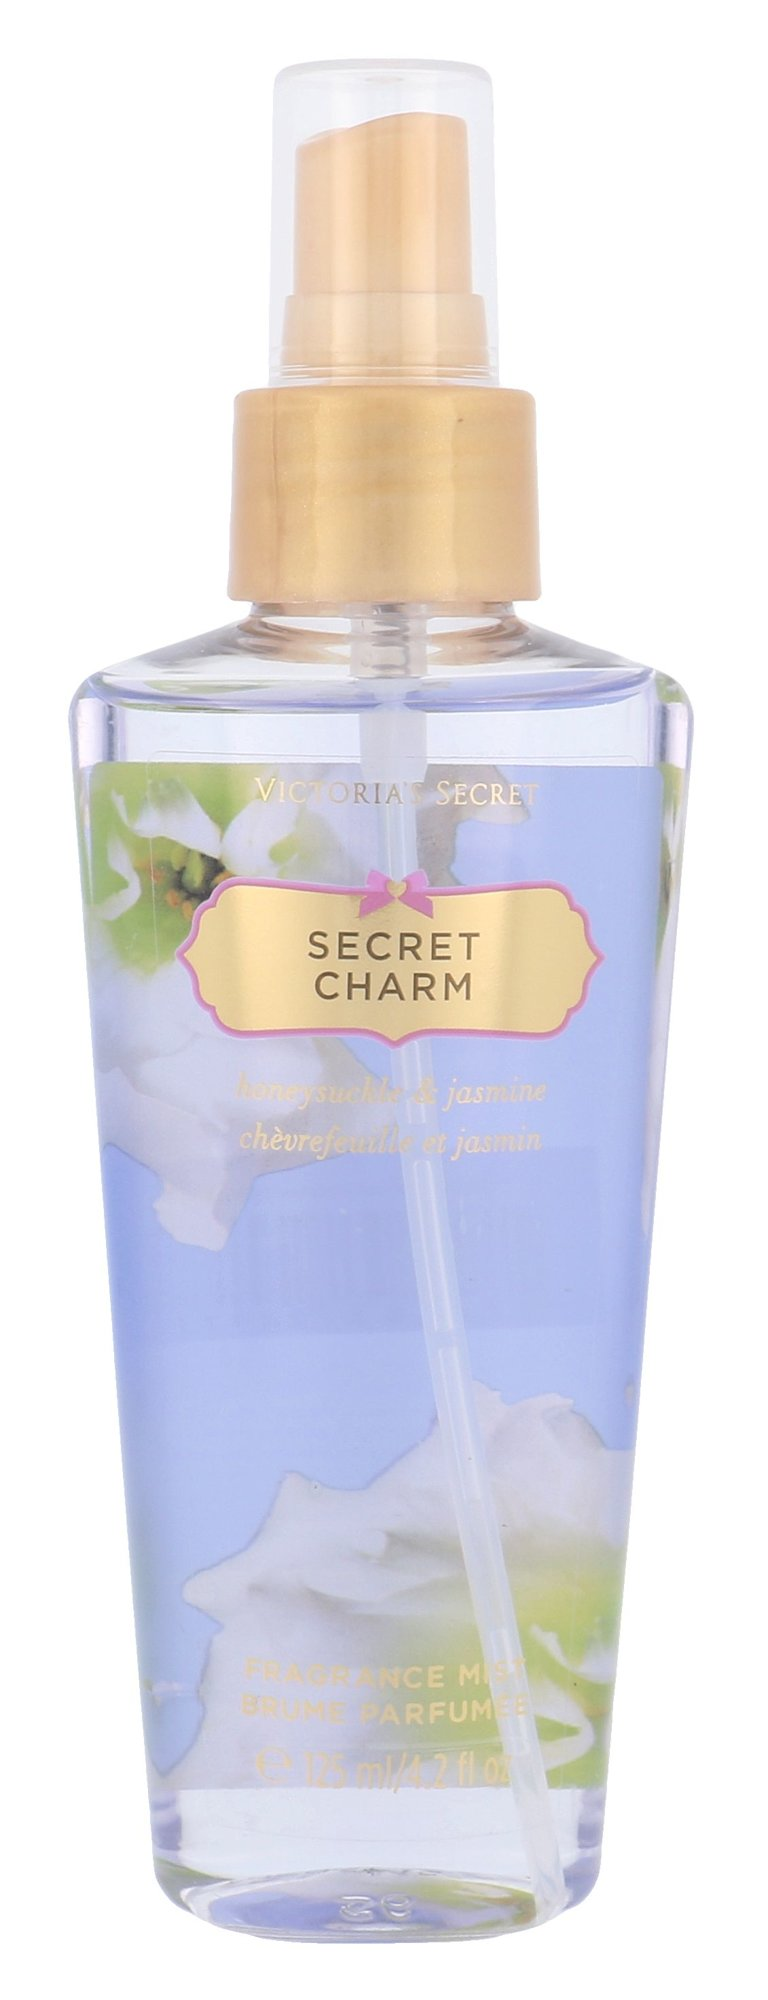 Victoria´s Secret Secret Charm Nourishing body spray 125ml